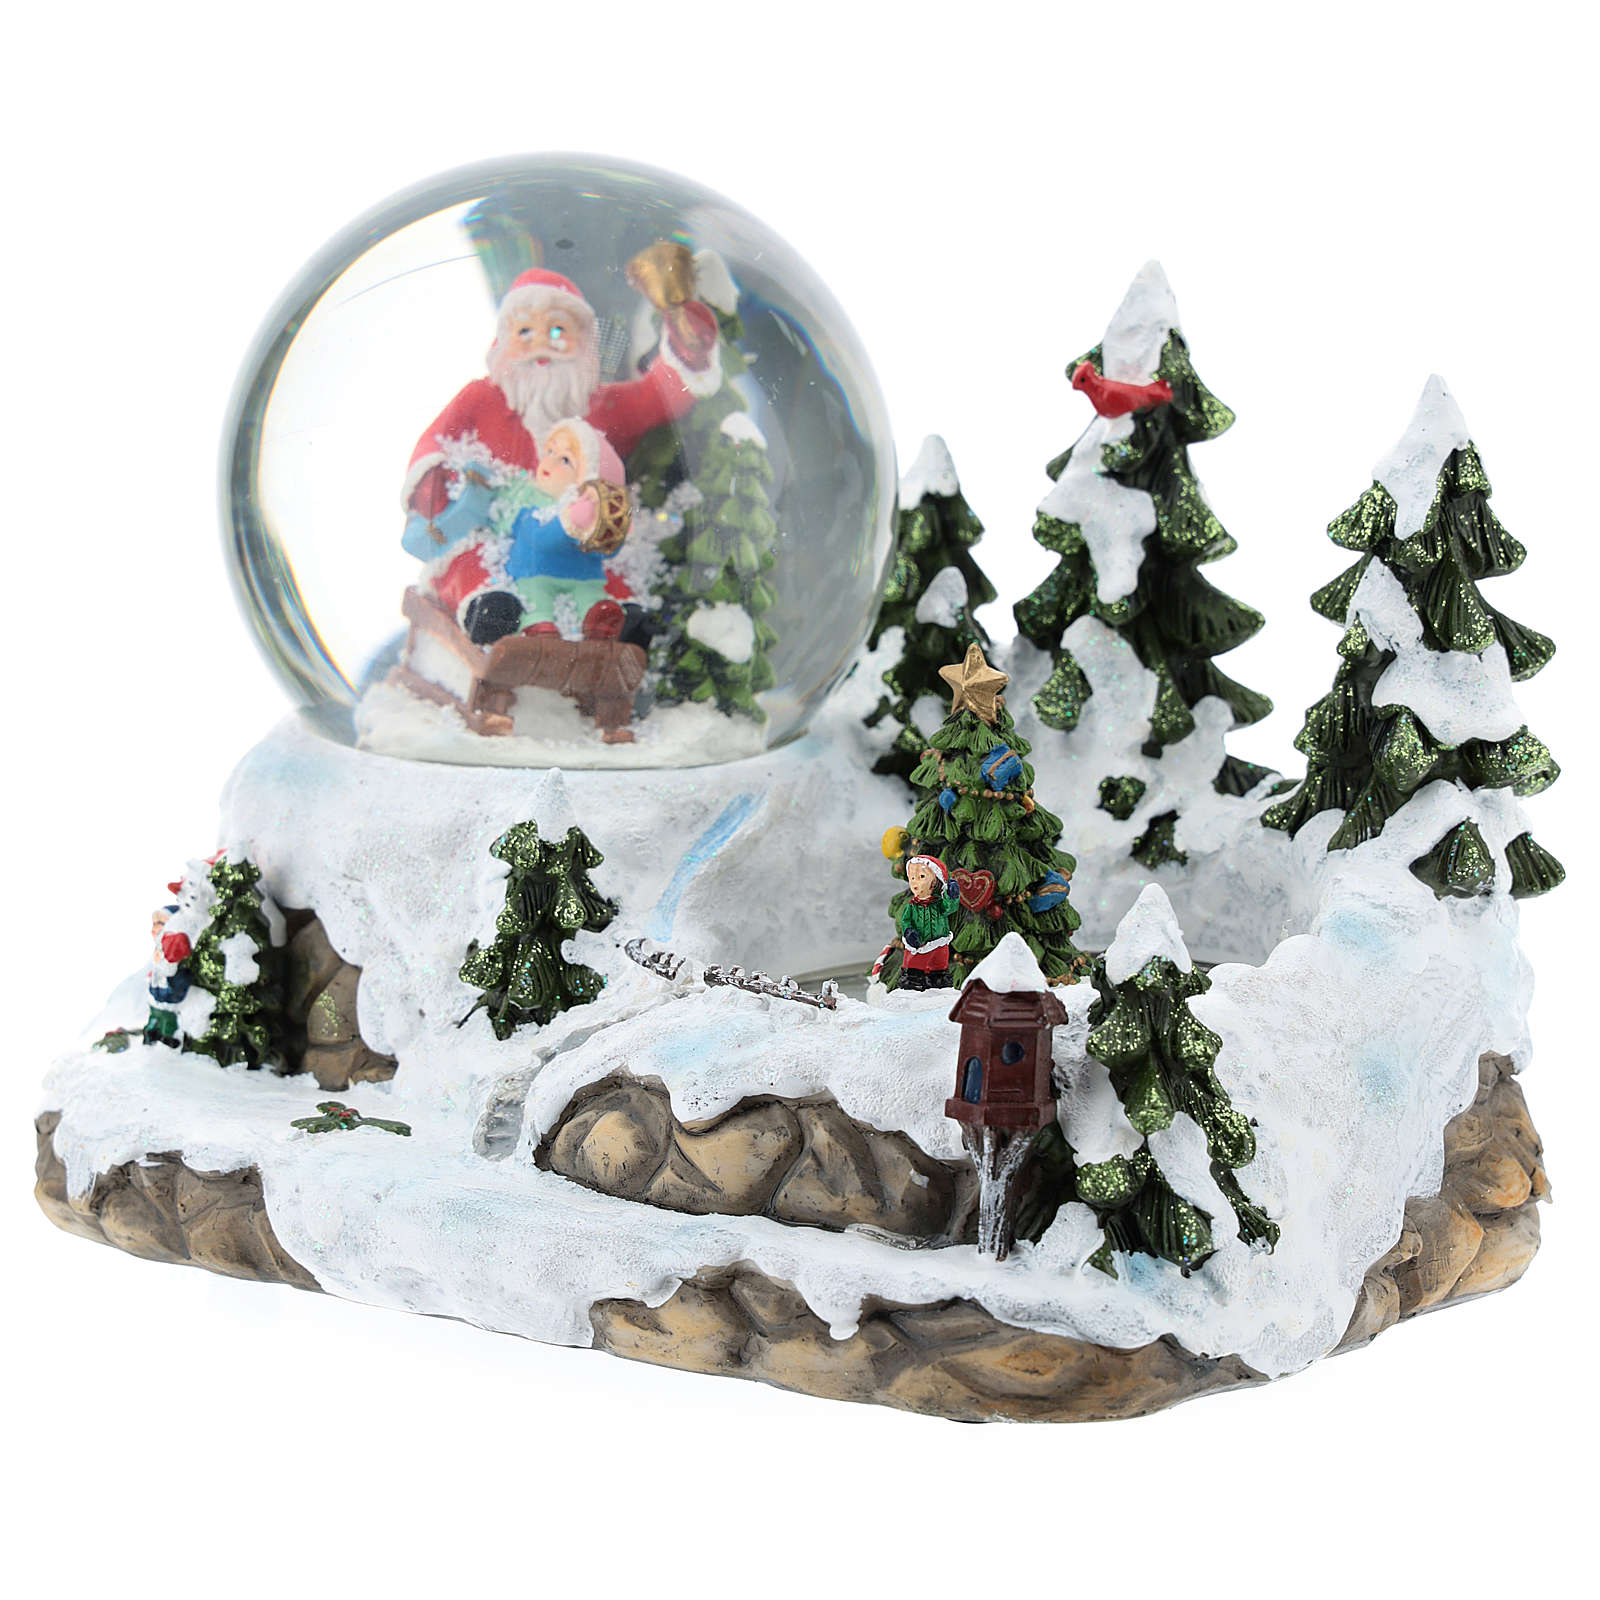 Glass ball with Santa Claus in a setting 15x20x15 cm 3